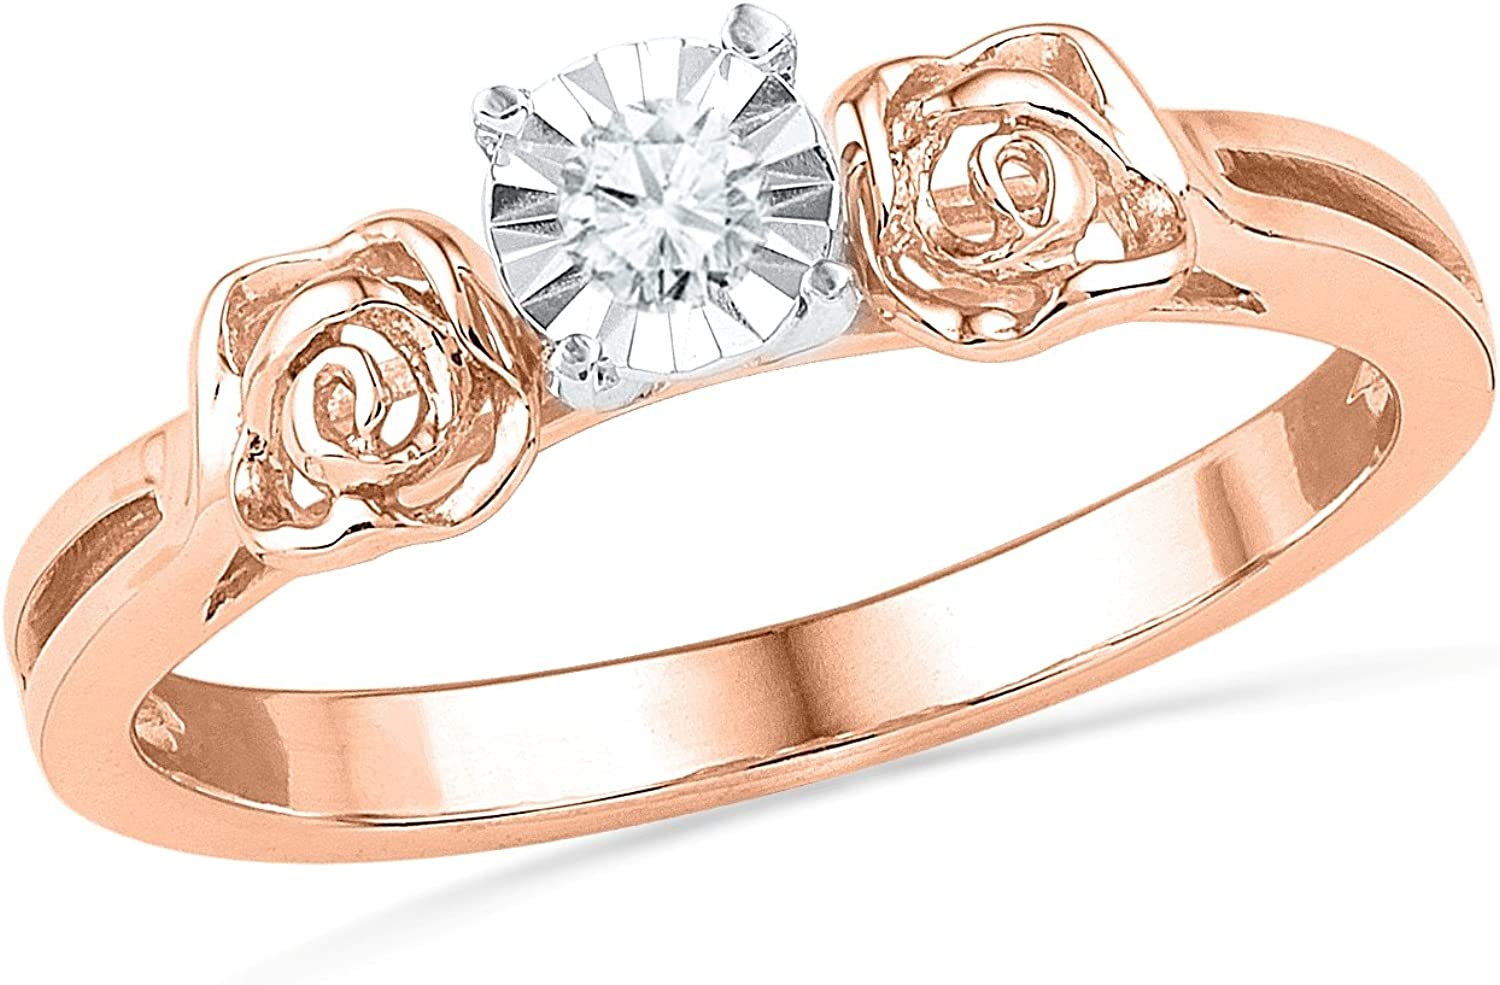 10KT Special sale item Pink Gold Round Diamond 0.04 CTTW Ring Promise Direct store